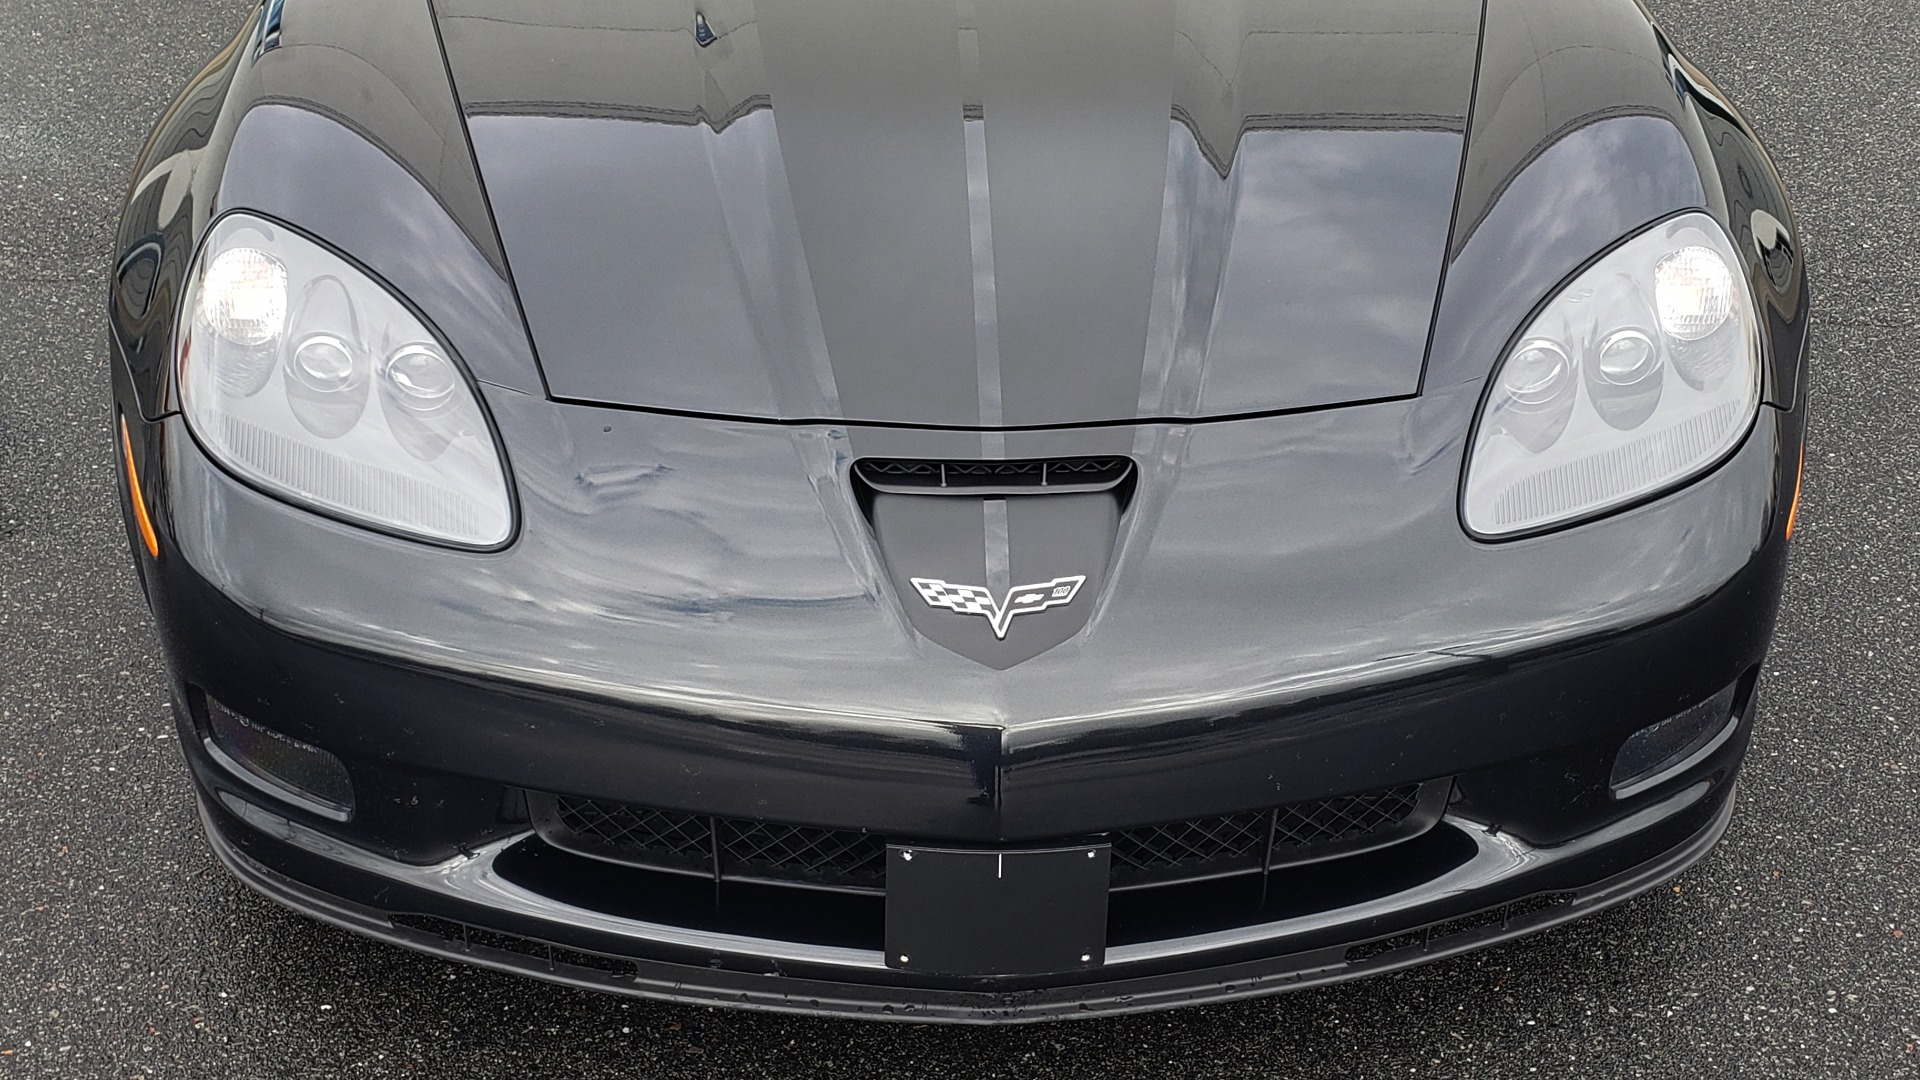 Used 2012 Chevrolet CORVETTE Z16 GRAND SPORT 3LT CONVERTIBLE / 6-SPD AUTO / NAV for sale Sold at Formula Imports in Charlotte NC 28227 30